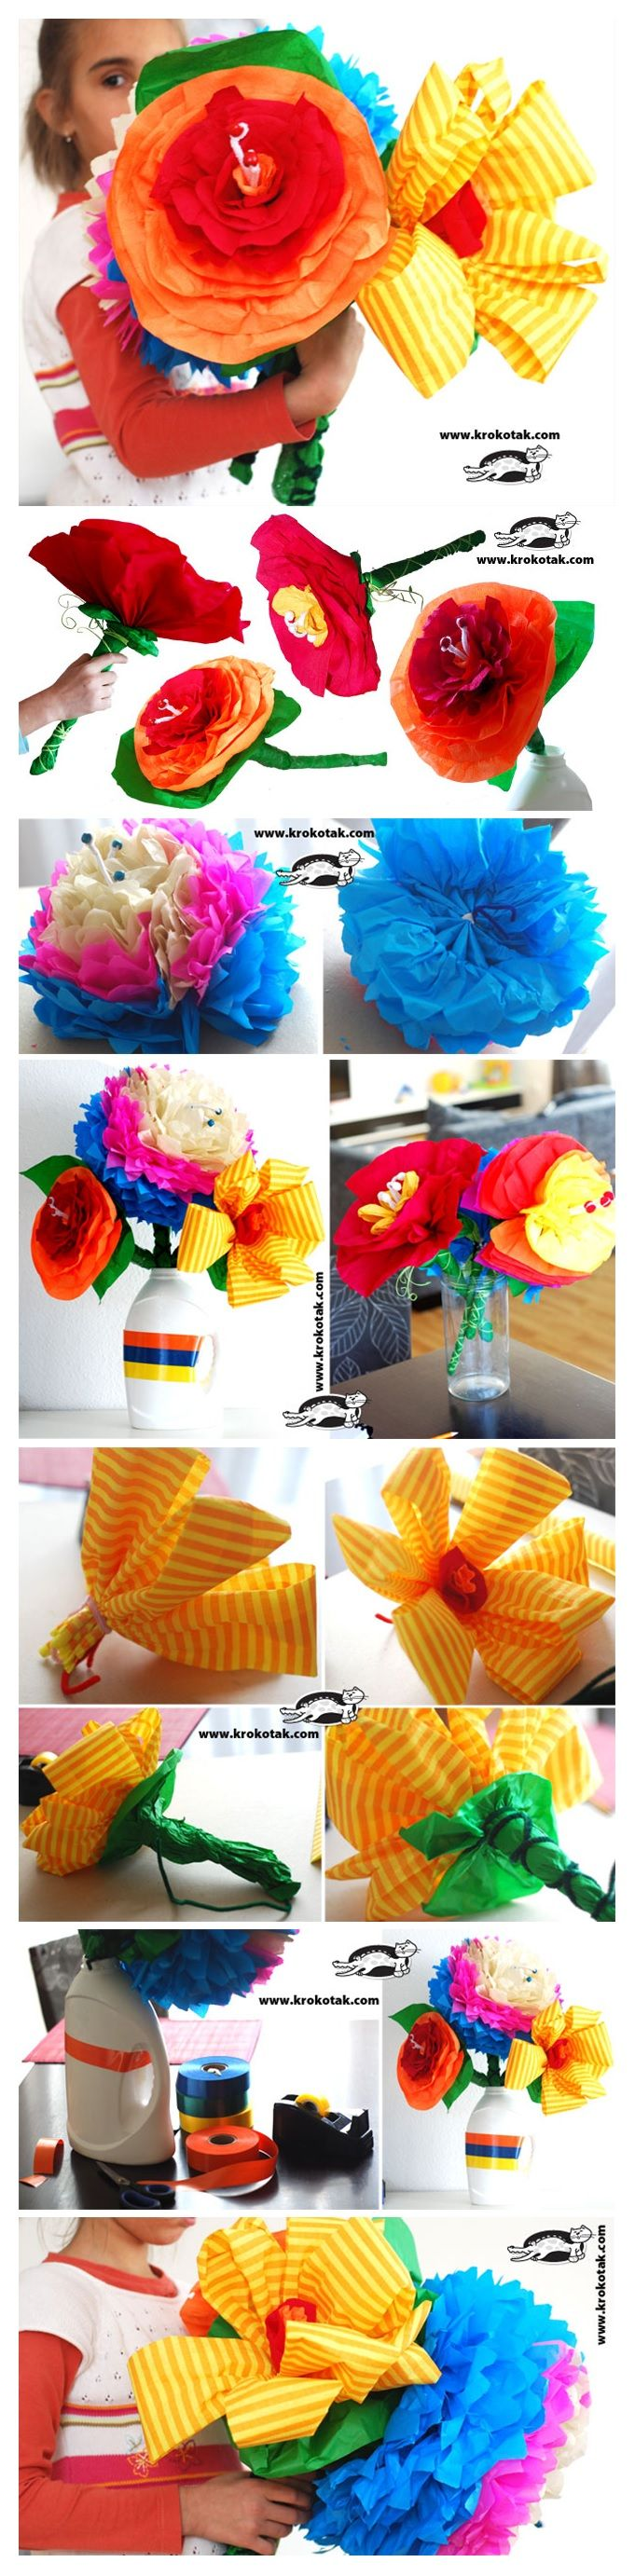 118 Best Day Of The Dead Birthday Party Images On Pinterest Day Of